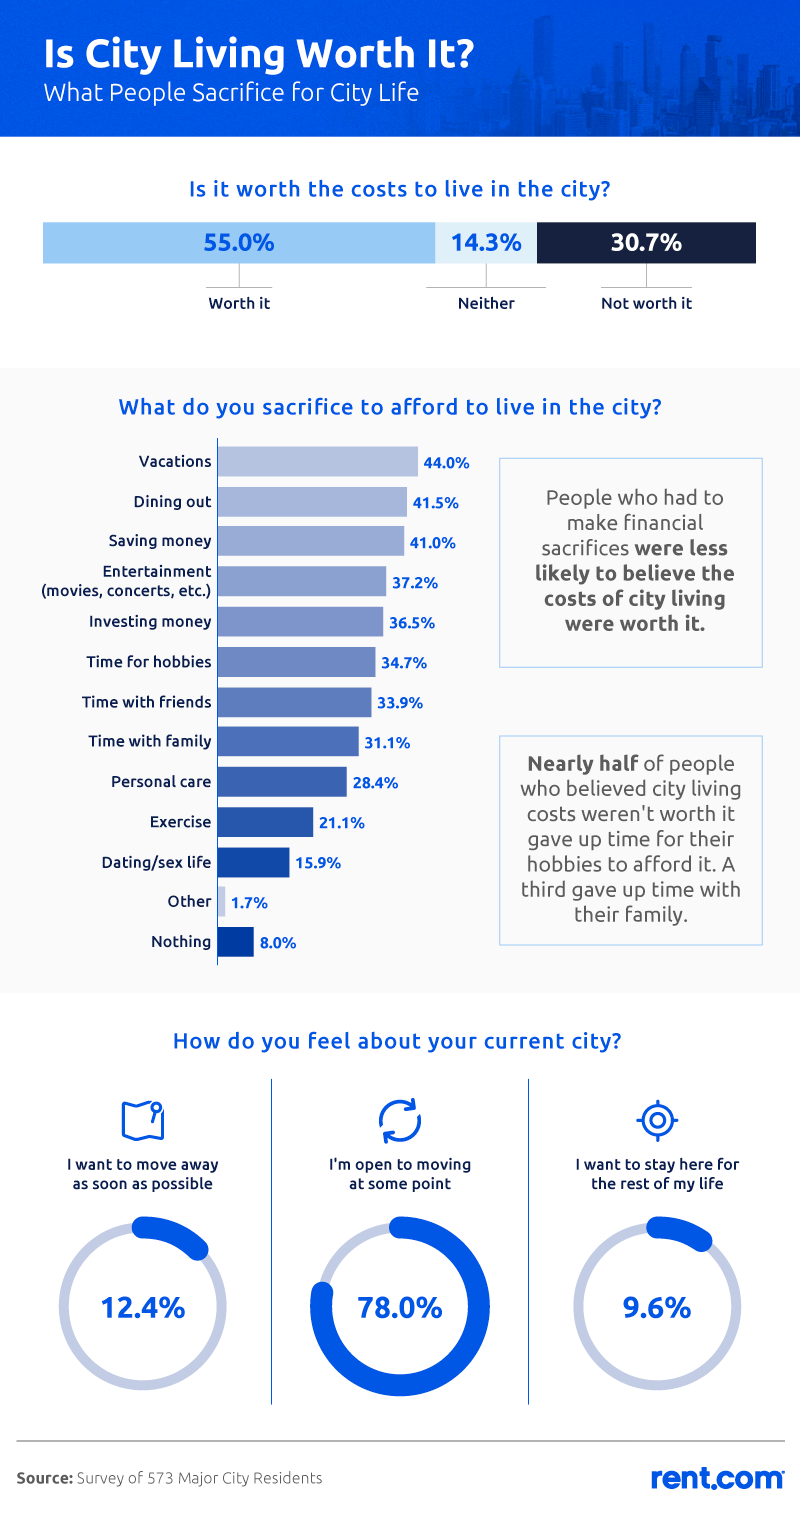 Is City Living Worth It?